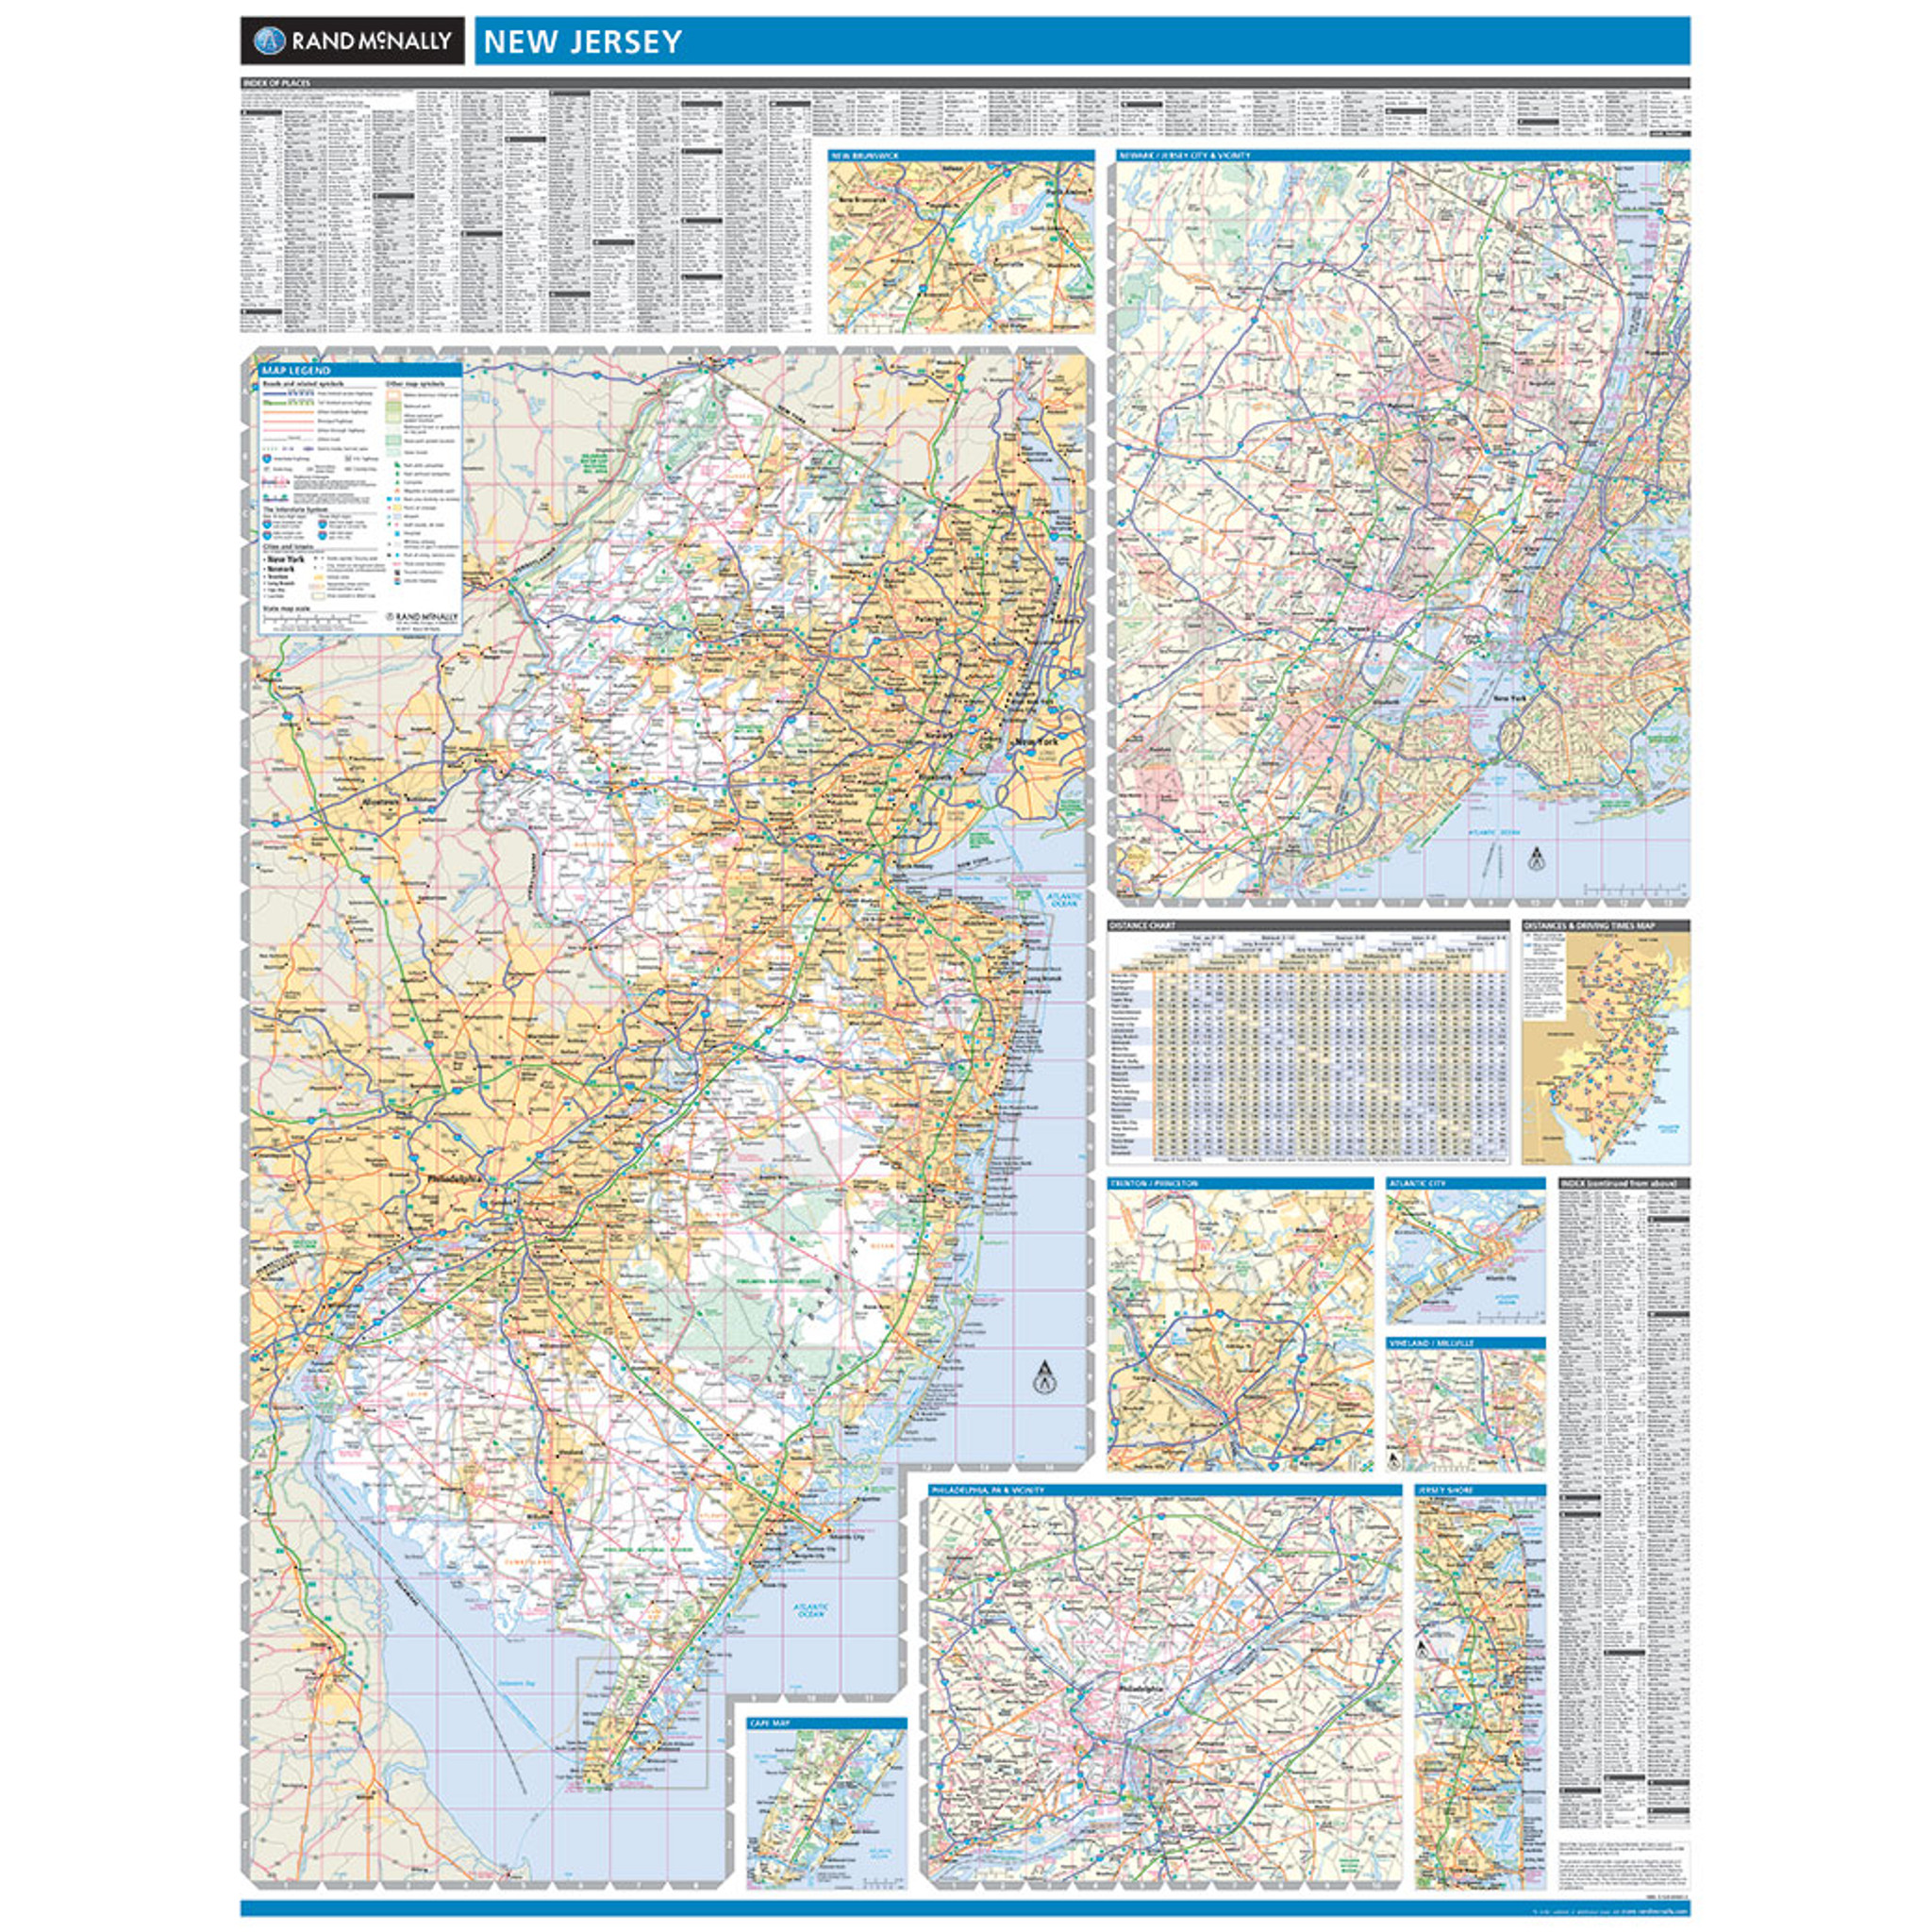 Rand McNally New Jersey State Wall Map